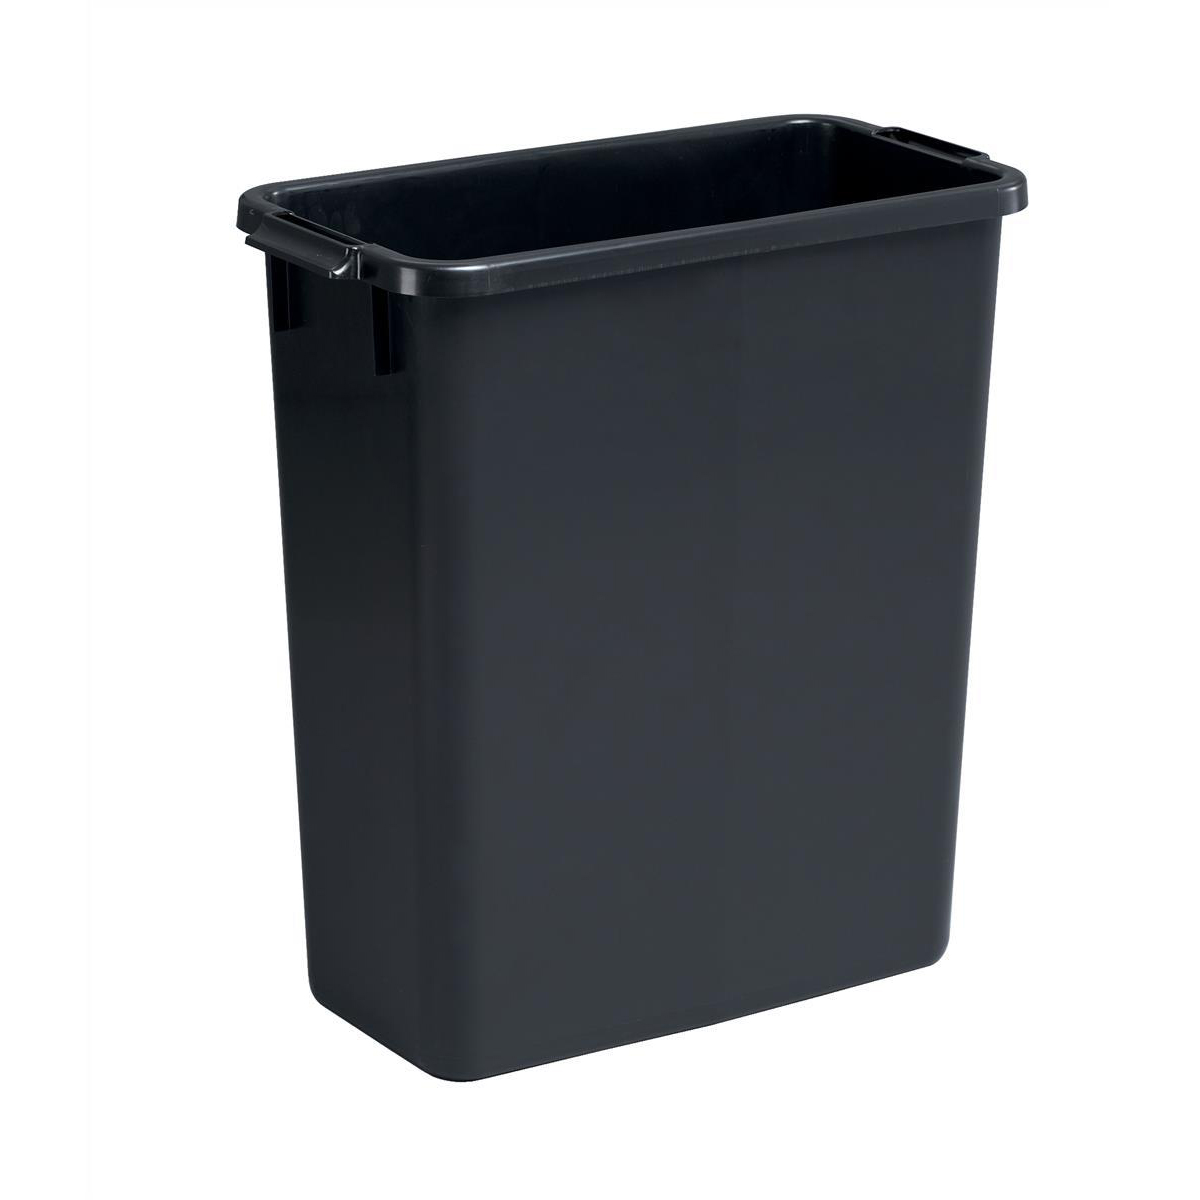 Rubbish Bins Durable Durabin Slim Bin 60 Litres Black Ref S10496221